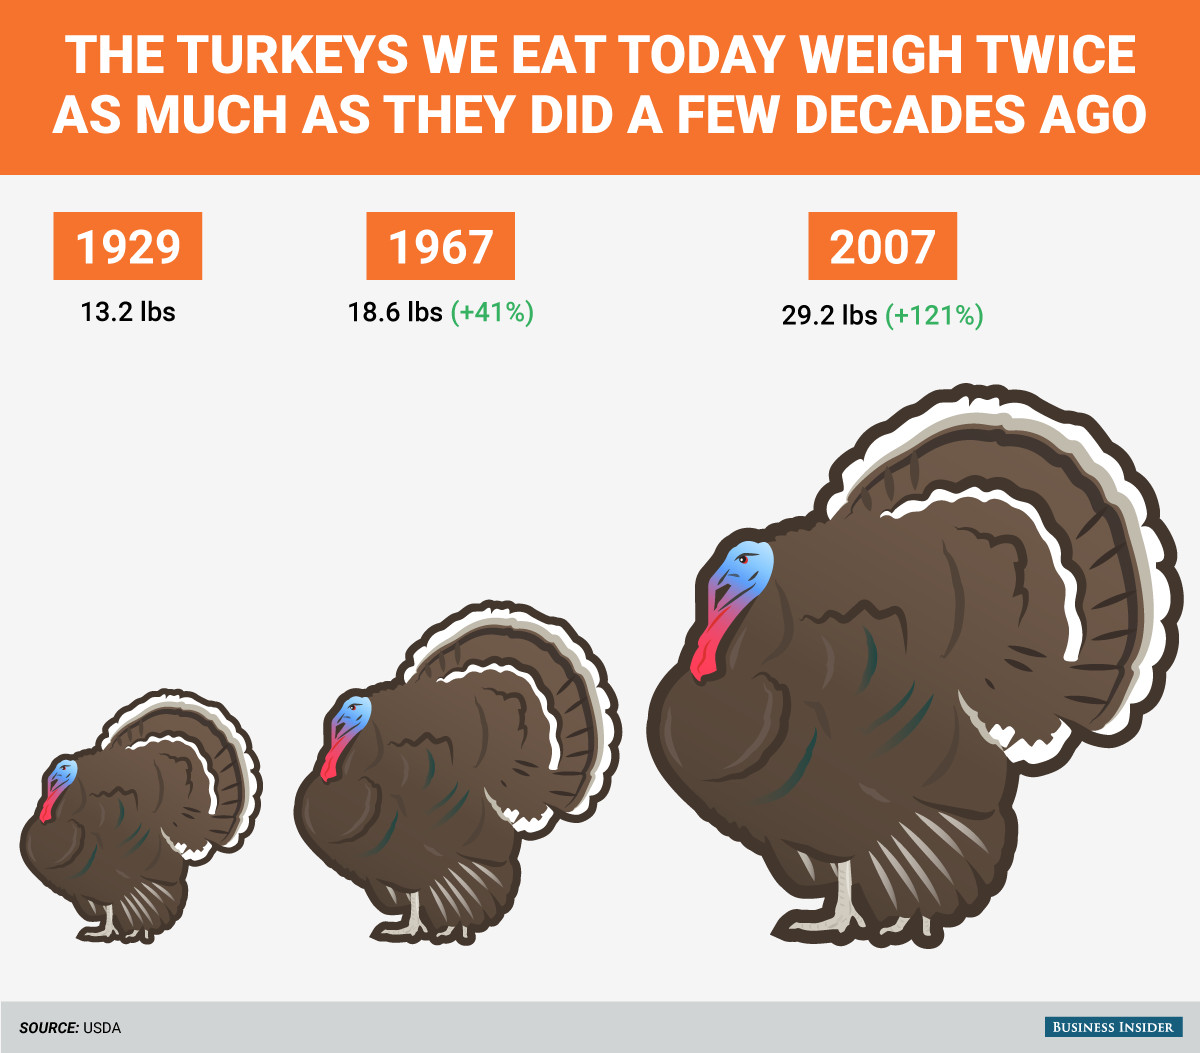 Average Thanksgiving Turkey Weight  The turkeys we eat today weigh twice as much as they did a